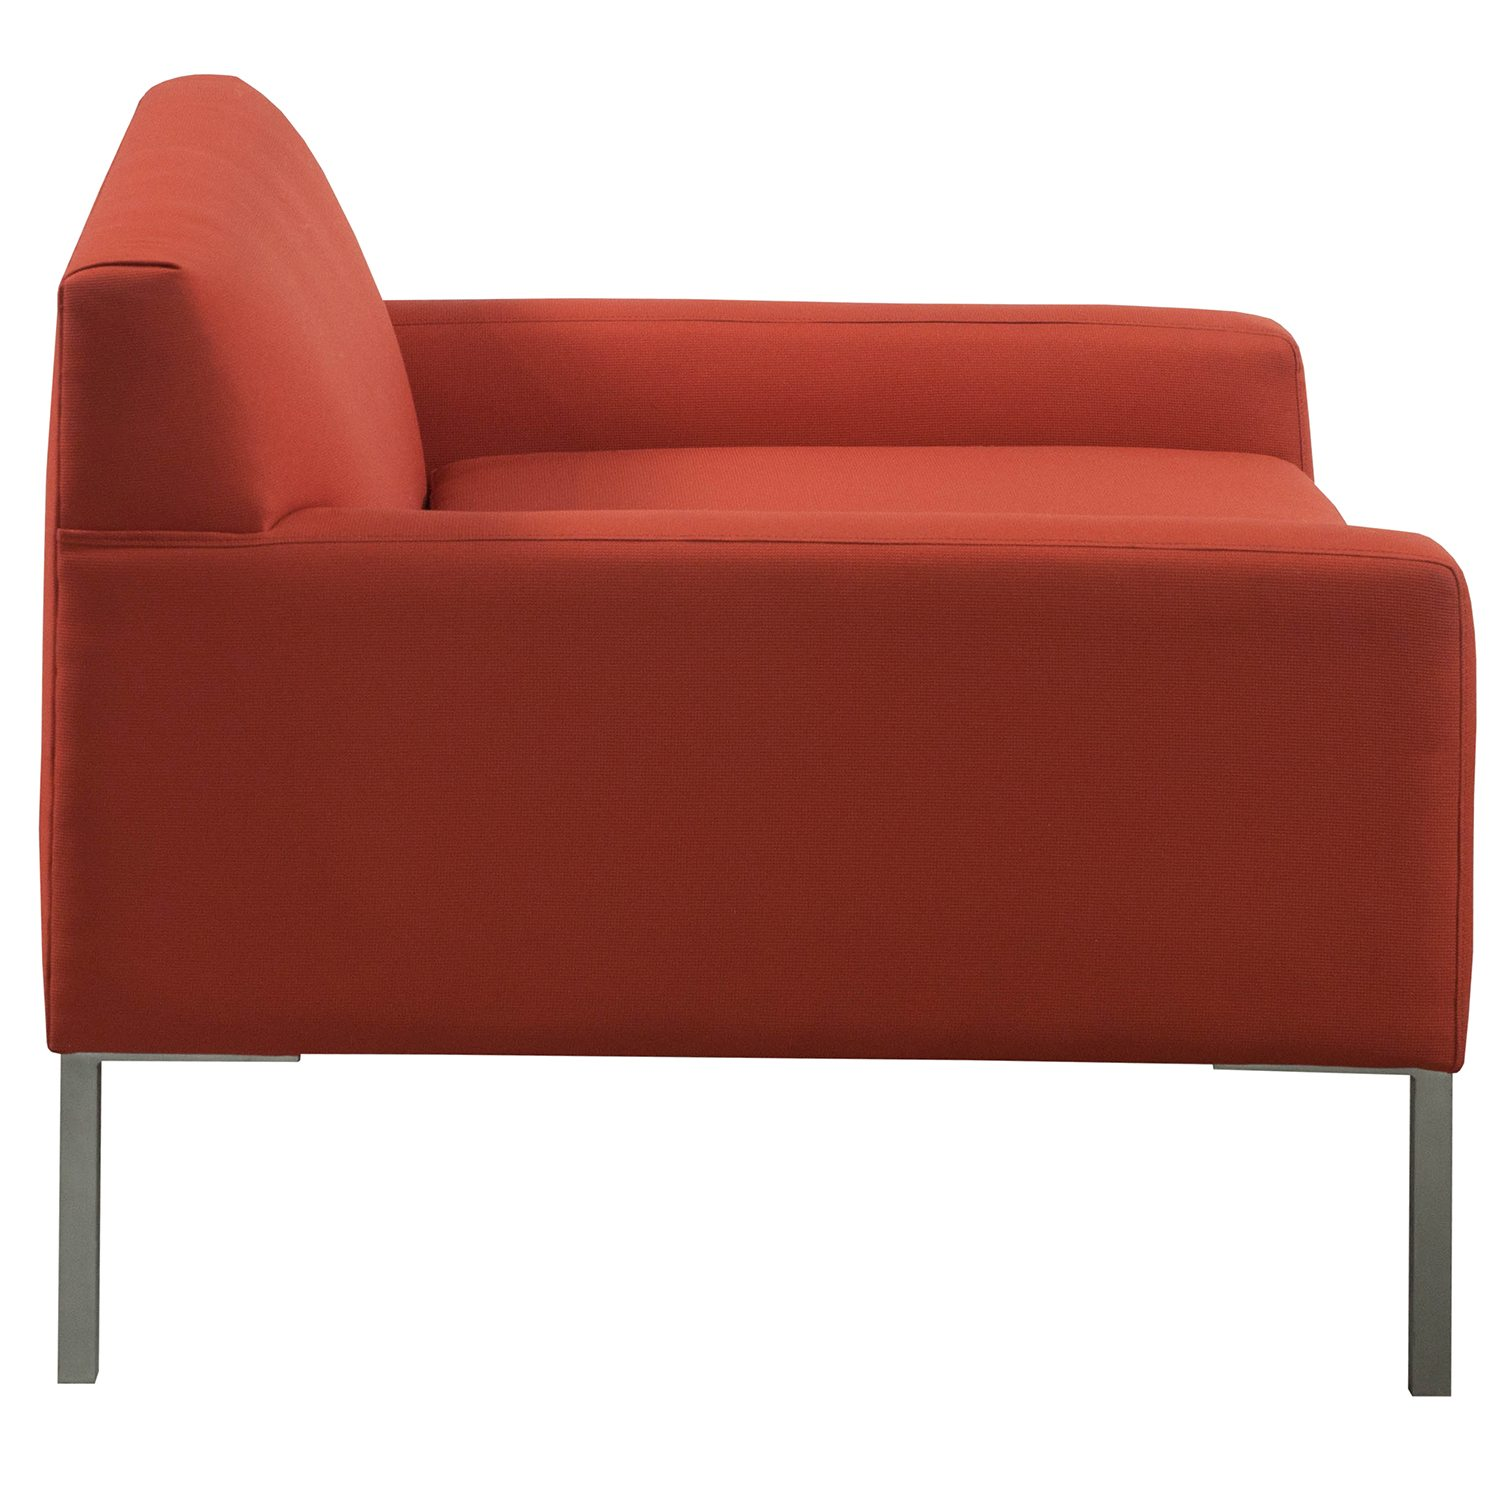 Orange Lounge Chair Used Lounge Chair Orange National Office Interiors And